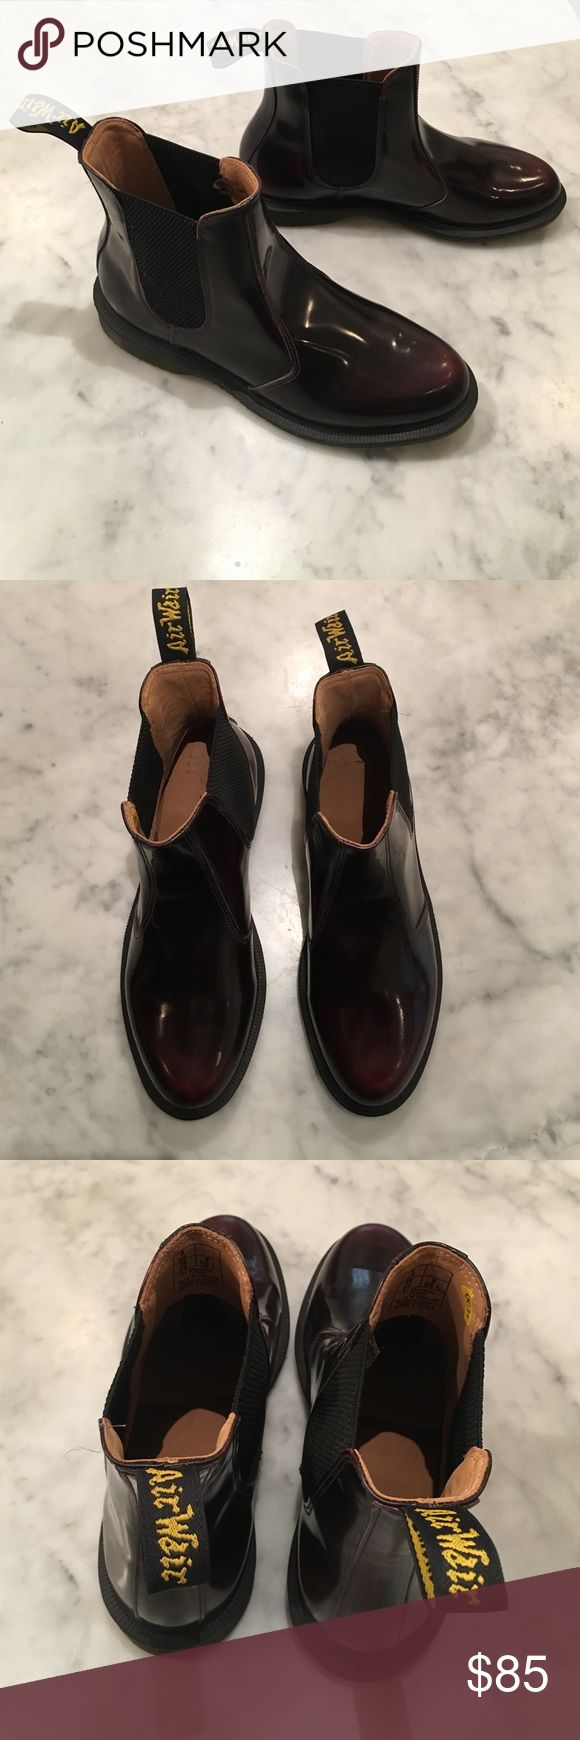 Dr Martens Flora Chelsea Boots Burgundy leather chelsea boots by Dr Martens. Never worn! New without box. Dr. Martens Shoes Ankle Boots & Booties